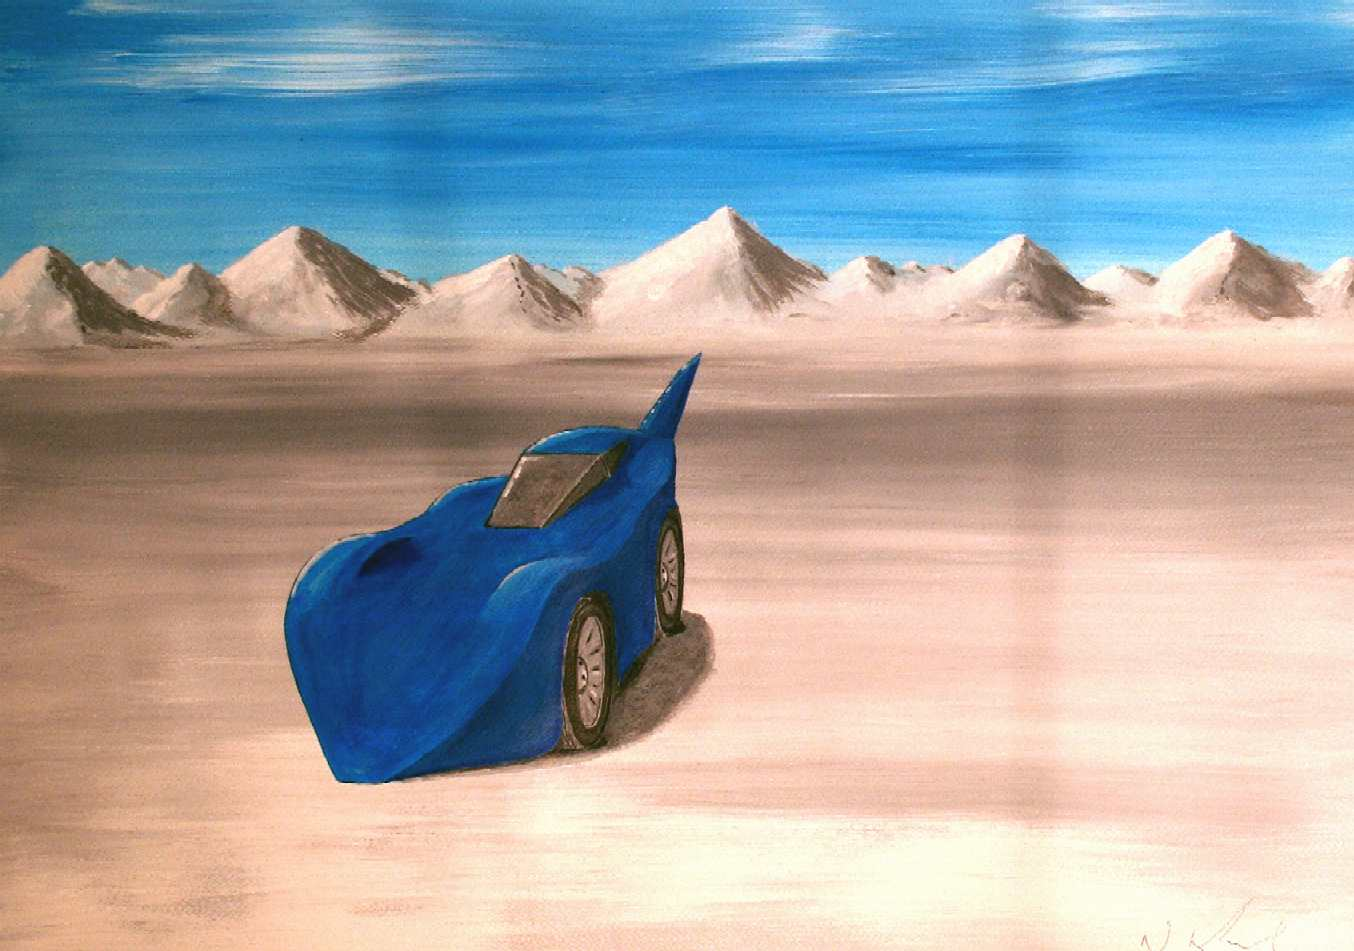 Bonneville Salt Flats, Utah, USA - Blueplanet electric land speed record car